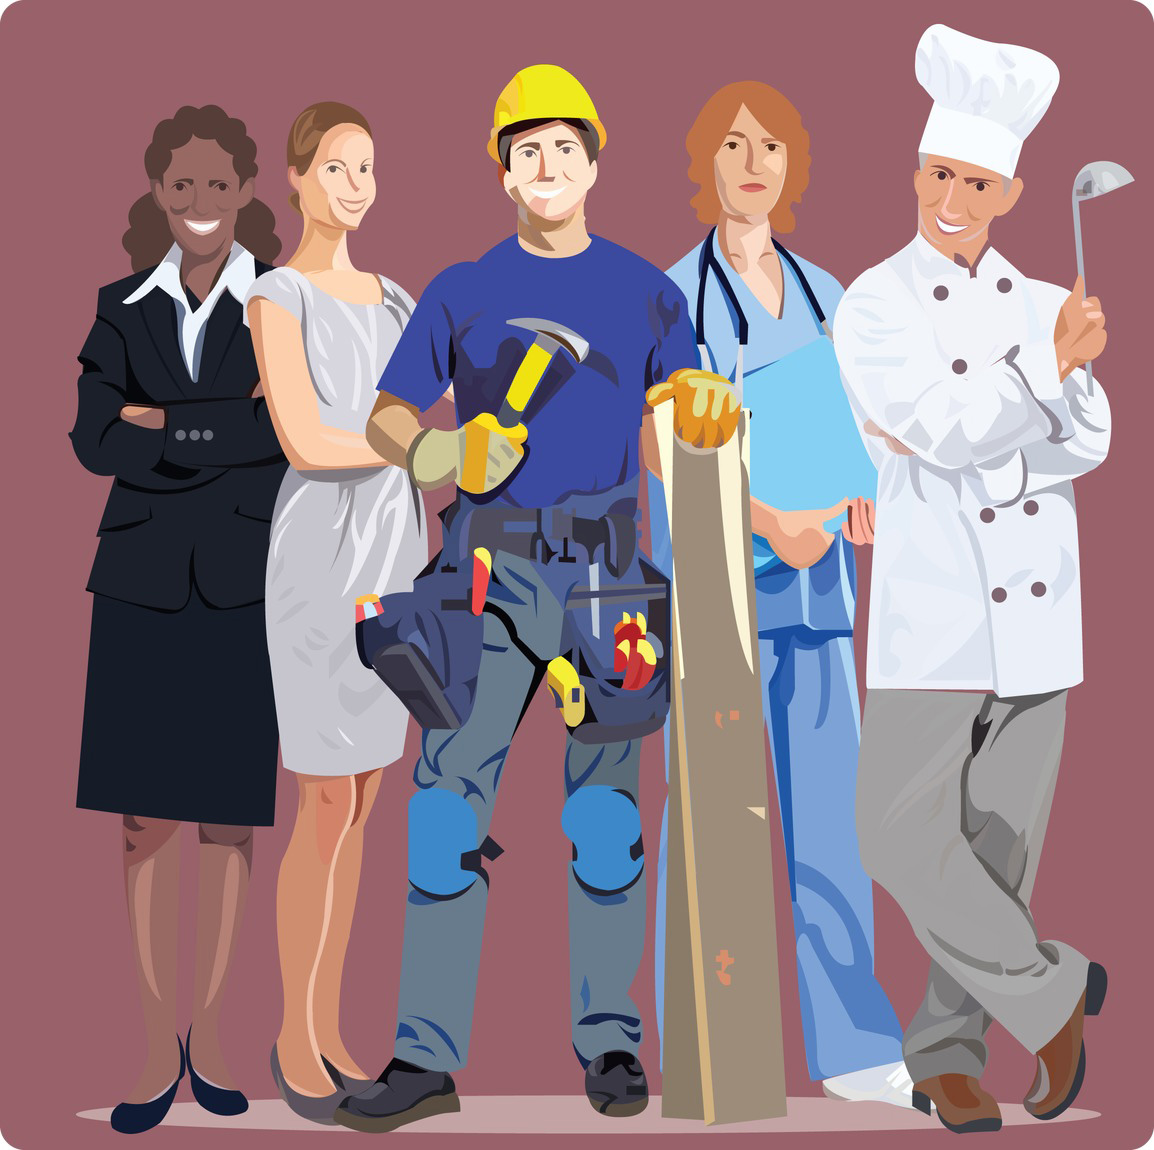 People-from-various-professions